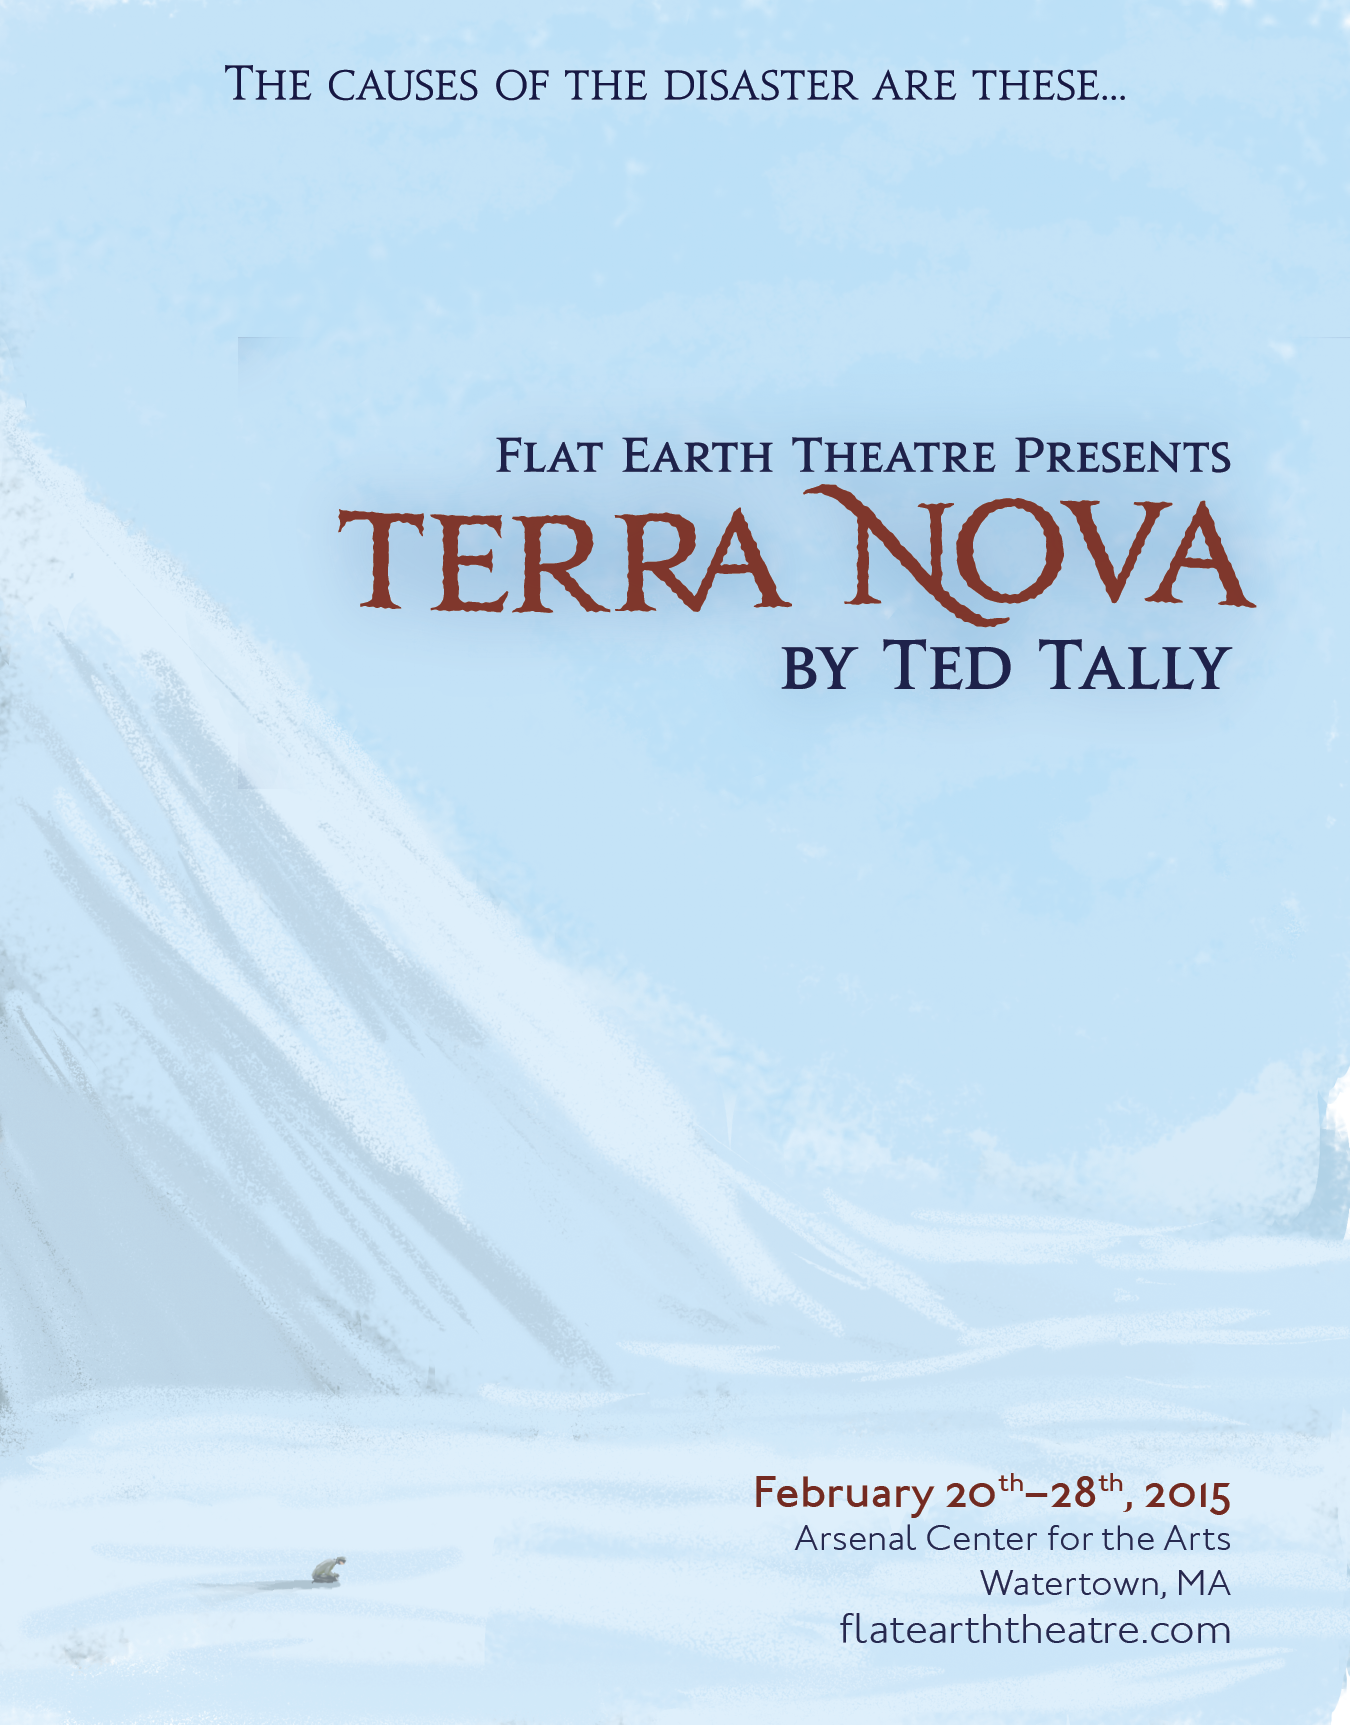 Ted Tally Png - Flat Earth Theatre Ventures South in Gripping Historical Drama ...